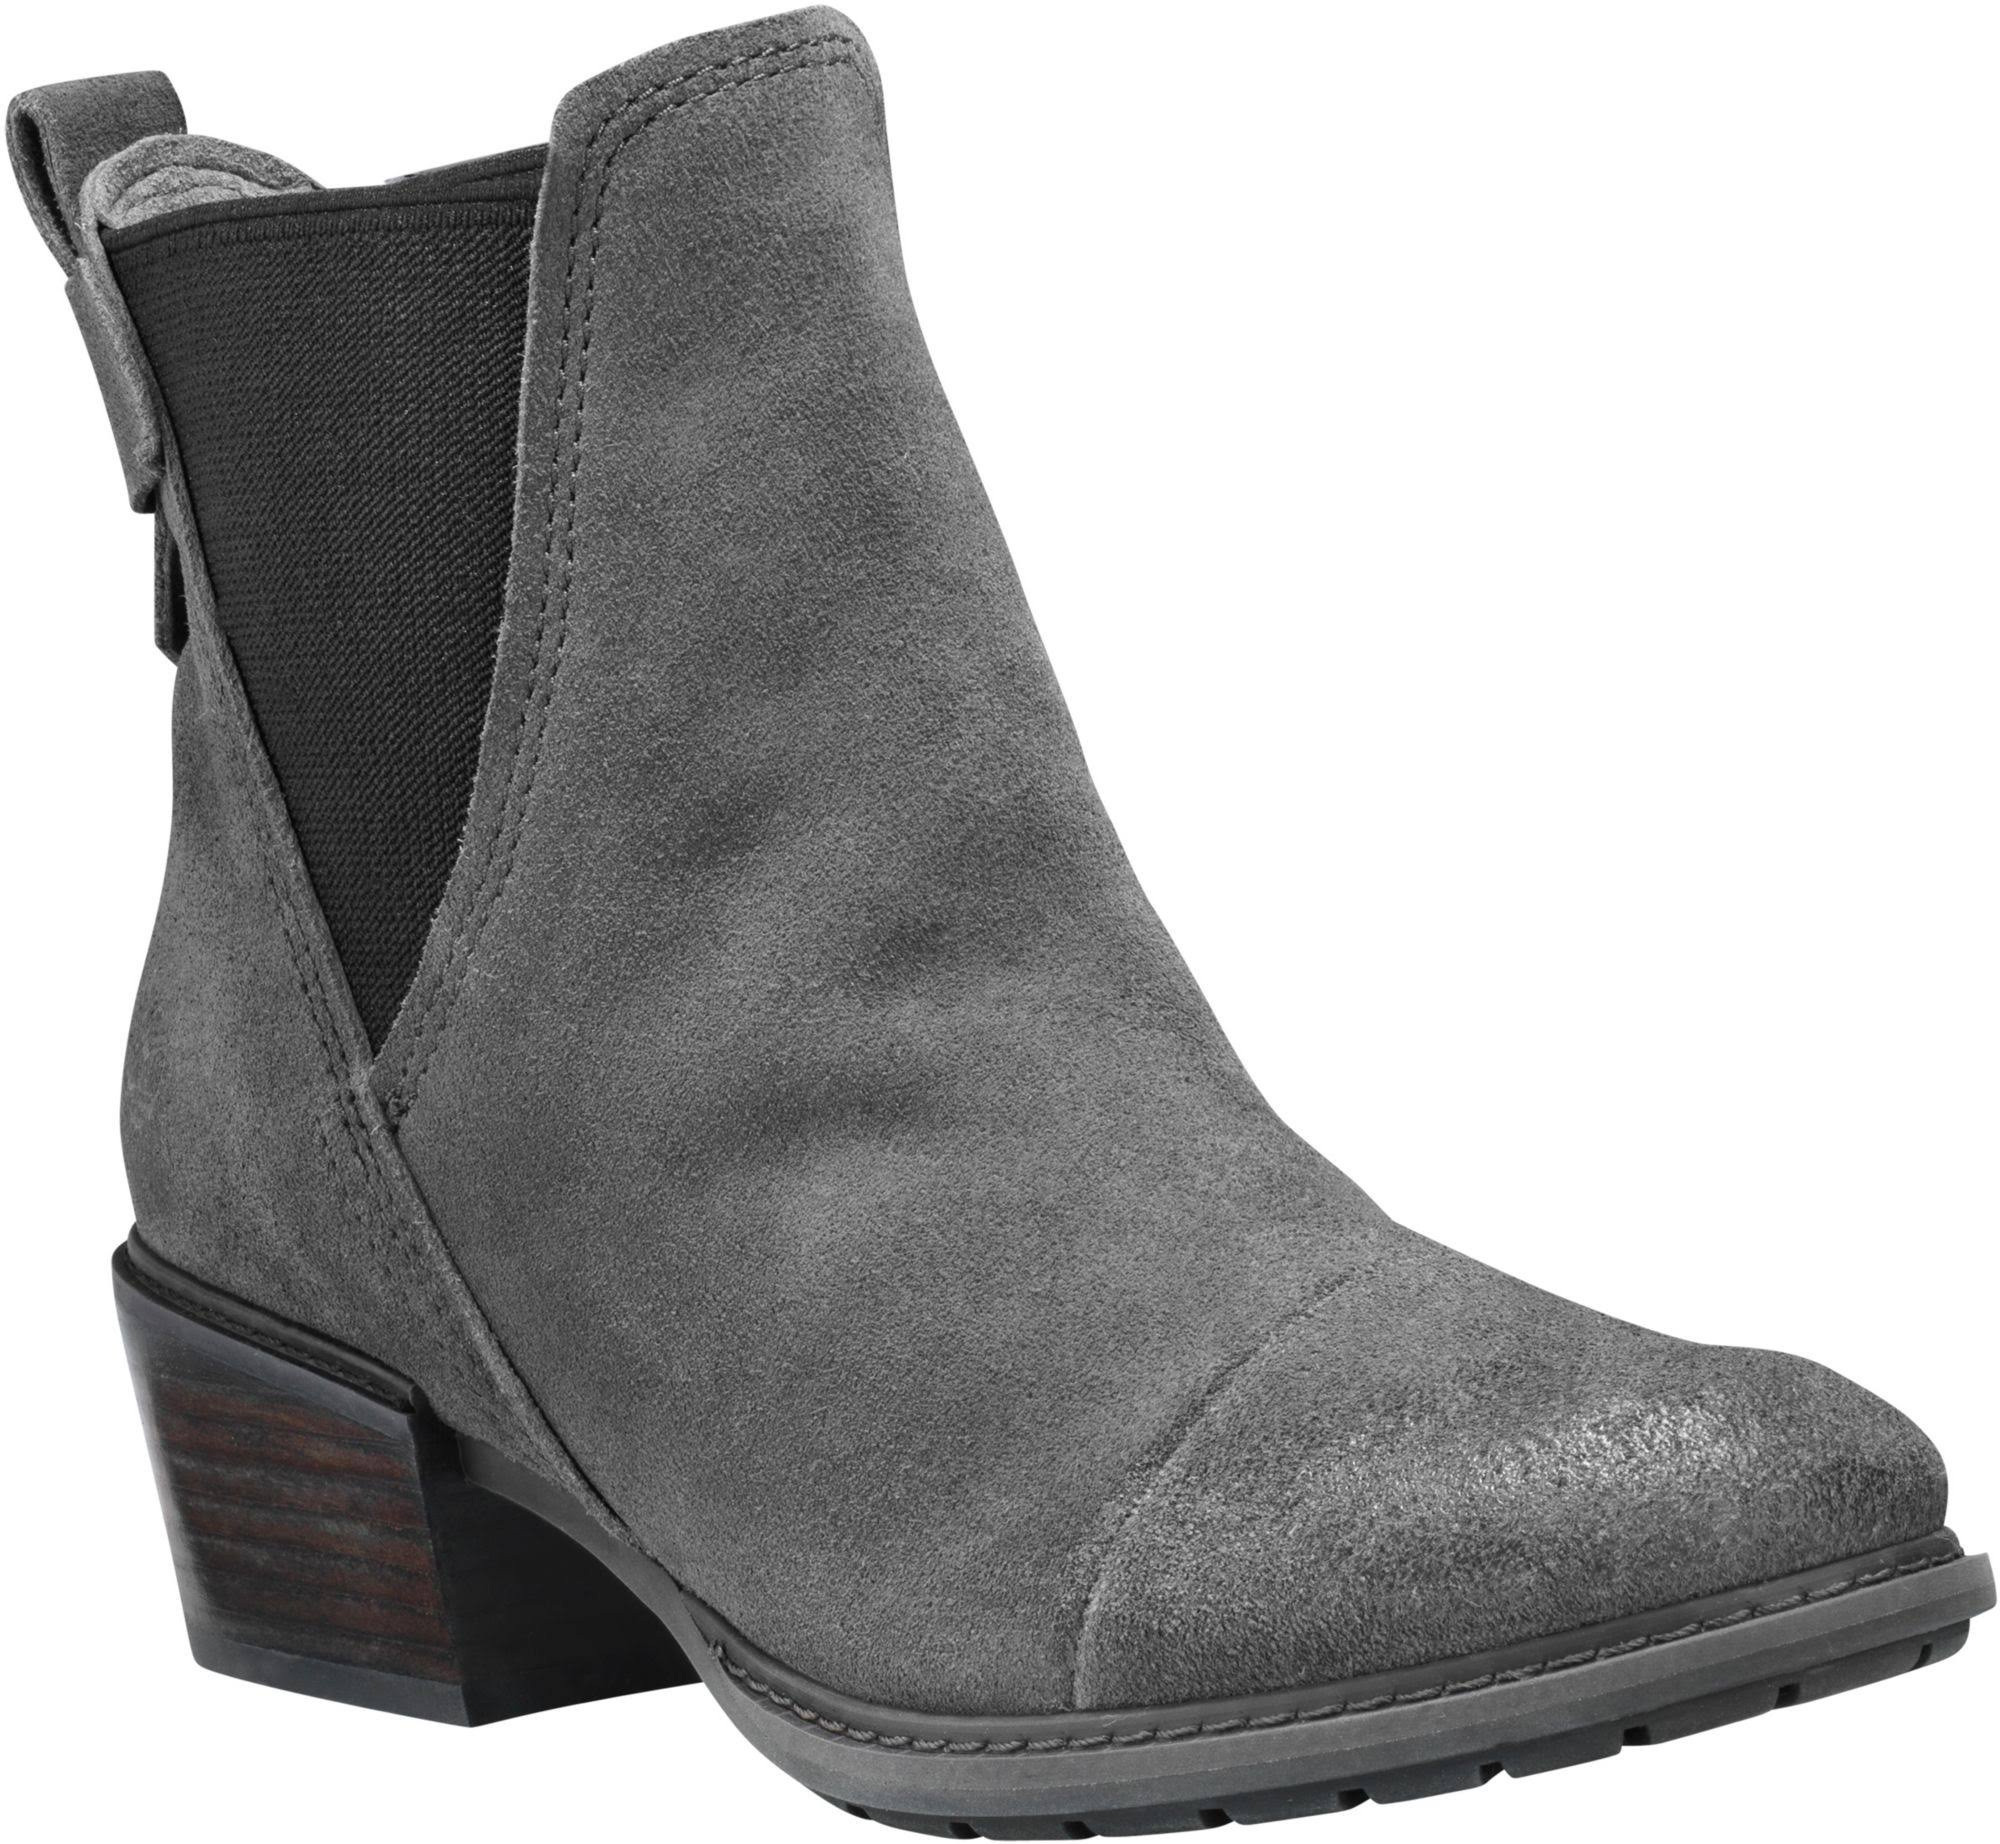 Chelsea Boots 6 Casual Size Bay Dark Suede Sutherlin Grey Women's Gray 0 Timberland wC1c6qRR